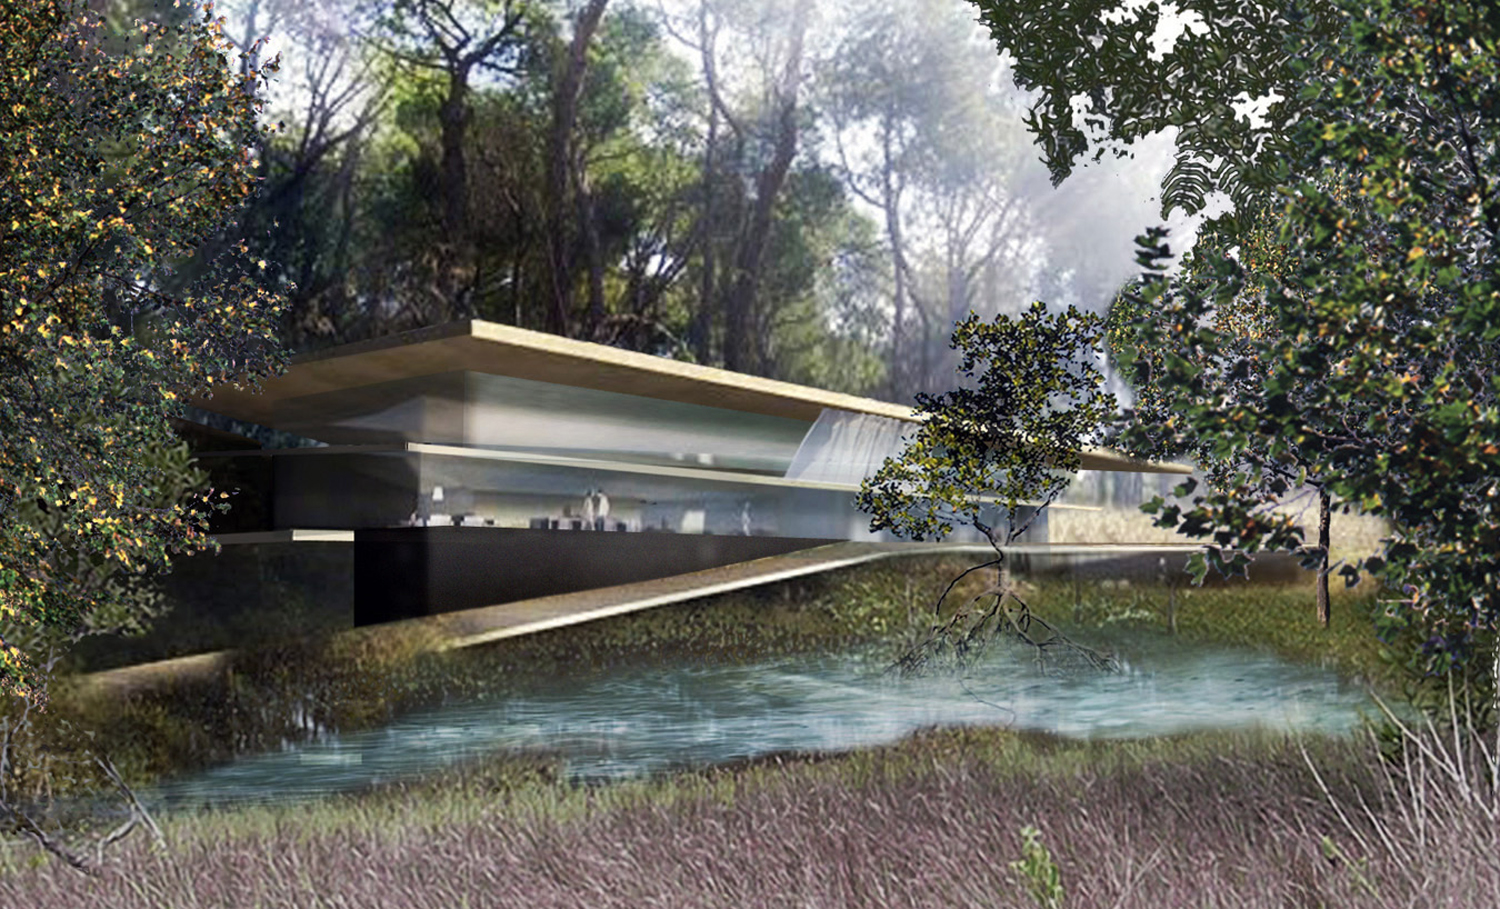 Resort villas   By concentrating the development of the villas in areas previously occupied by building, existing plants and trees are conserved, with the aim of producing, a higher density of villas together with more privacy.